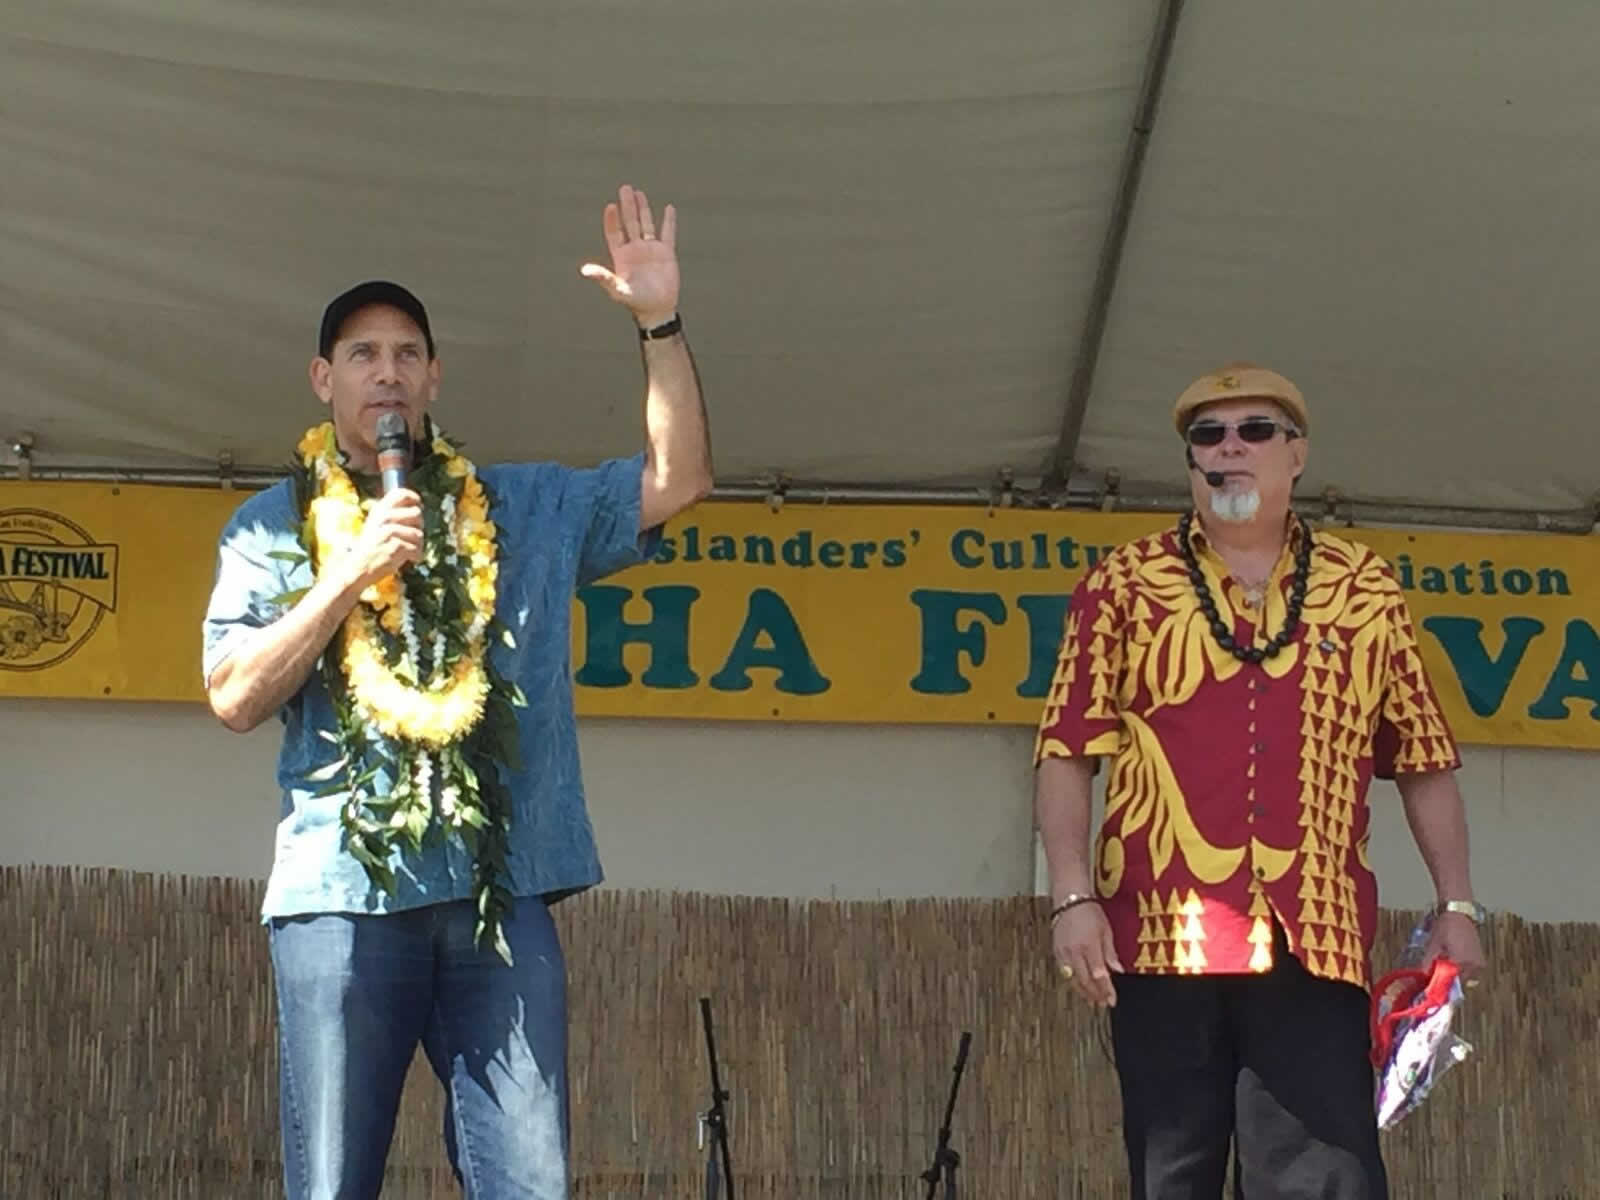 <div class='meta'><div class='origin-logo' data-origin='none'></div><span class='caption-text' data-credit='KGO-TV'>The Aloha Festival at the San Mateo County Event Center on Saturday, August 6, 2016.</span></div>